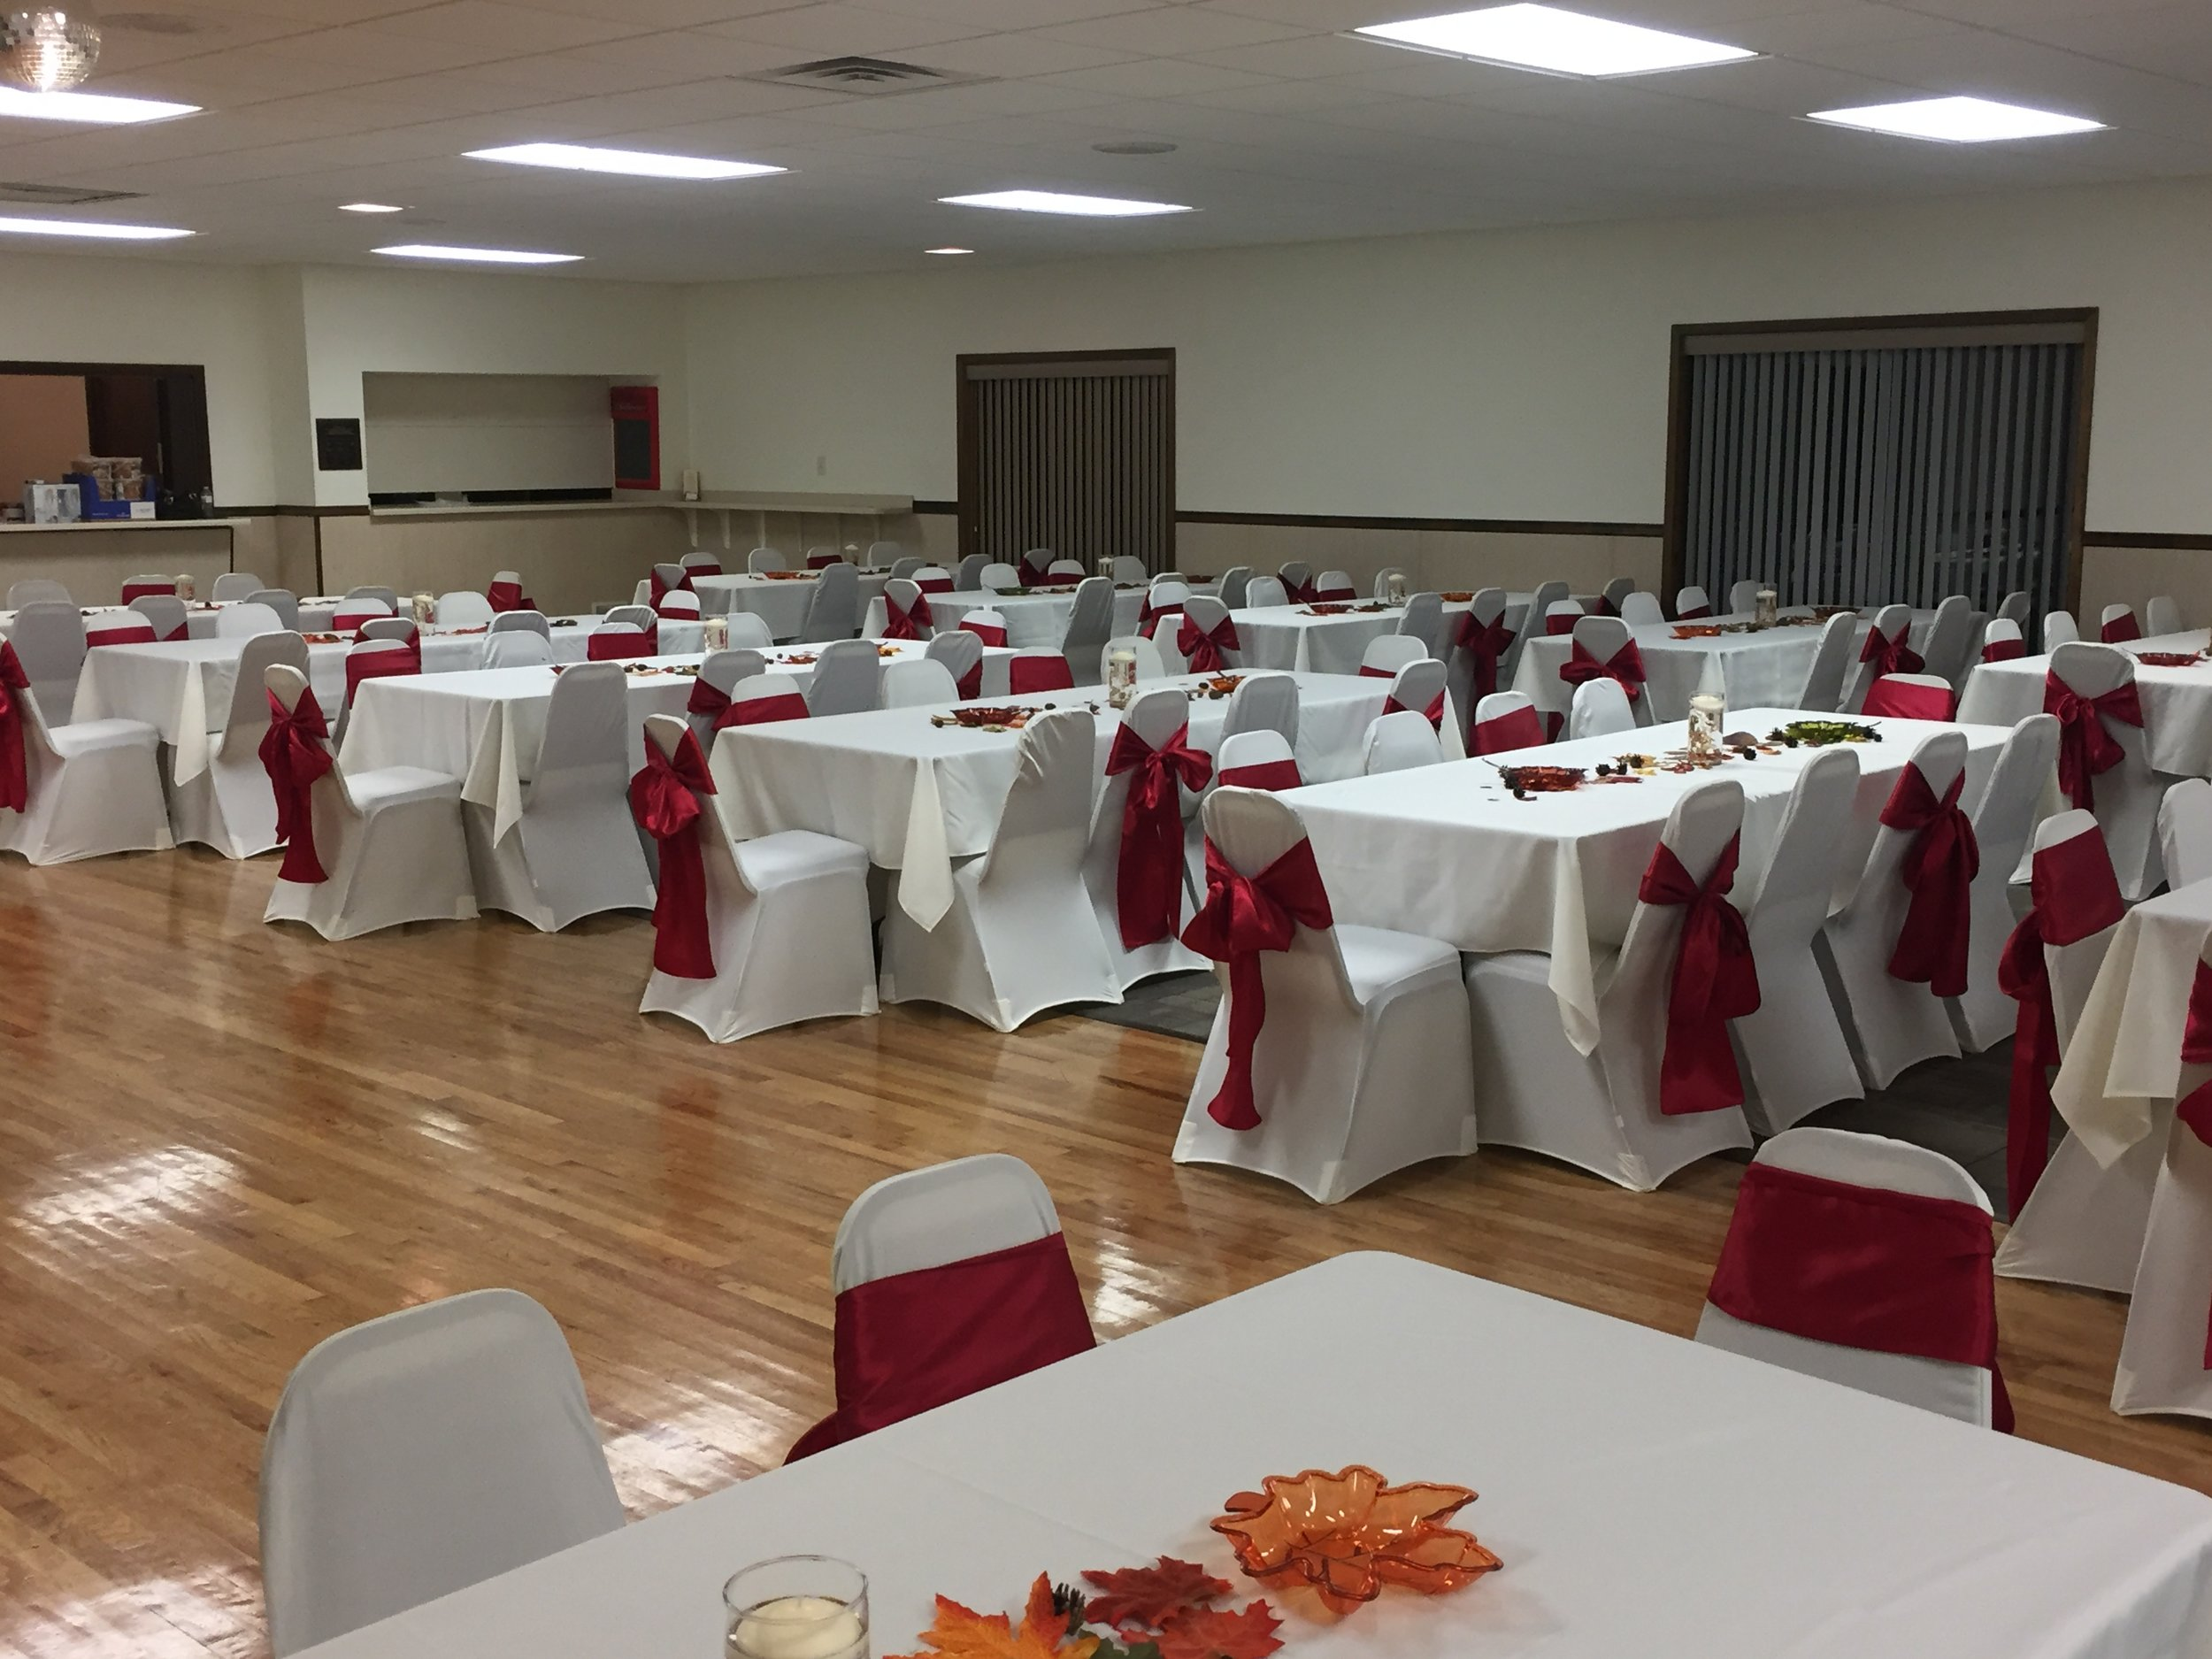 Red sashes with white chair covers